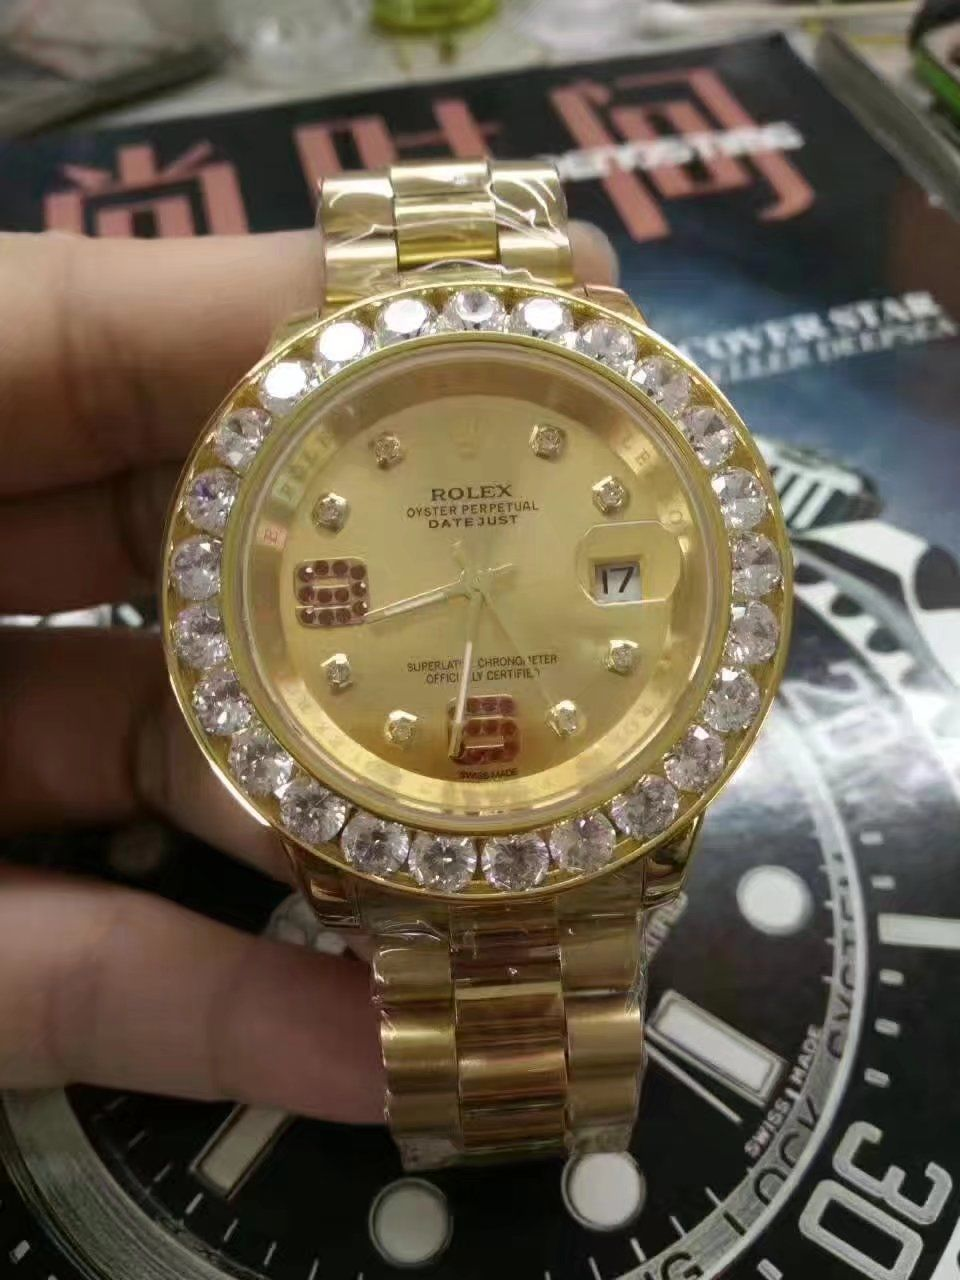 Rolex Datejust II Big diamond Automatic Mechanical Watch Gender   Mens  Size  44mm Movement   c93256d6c3